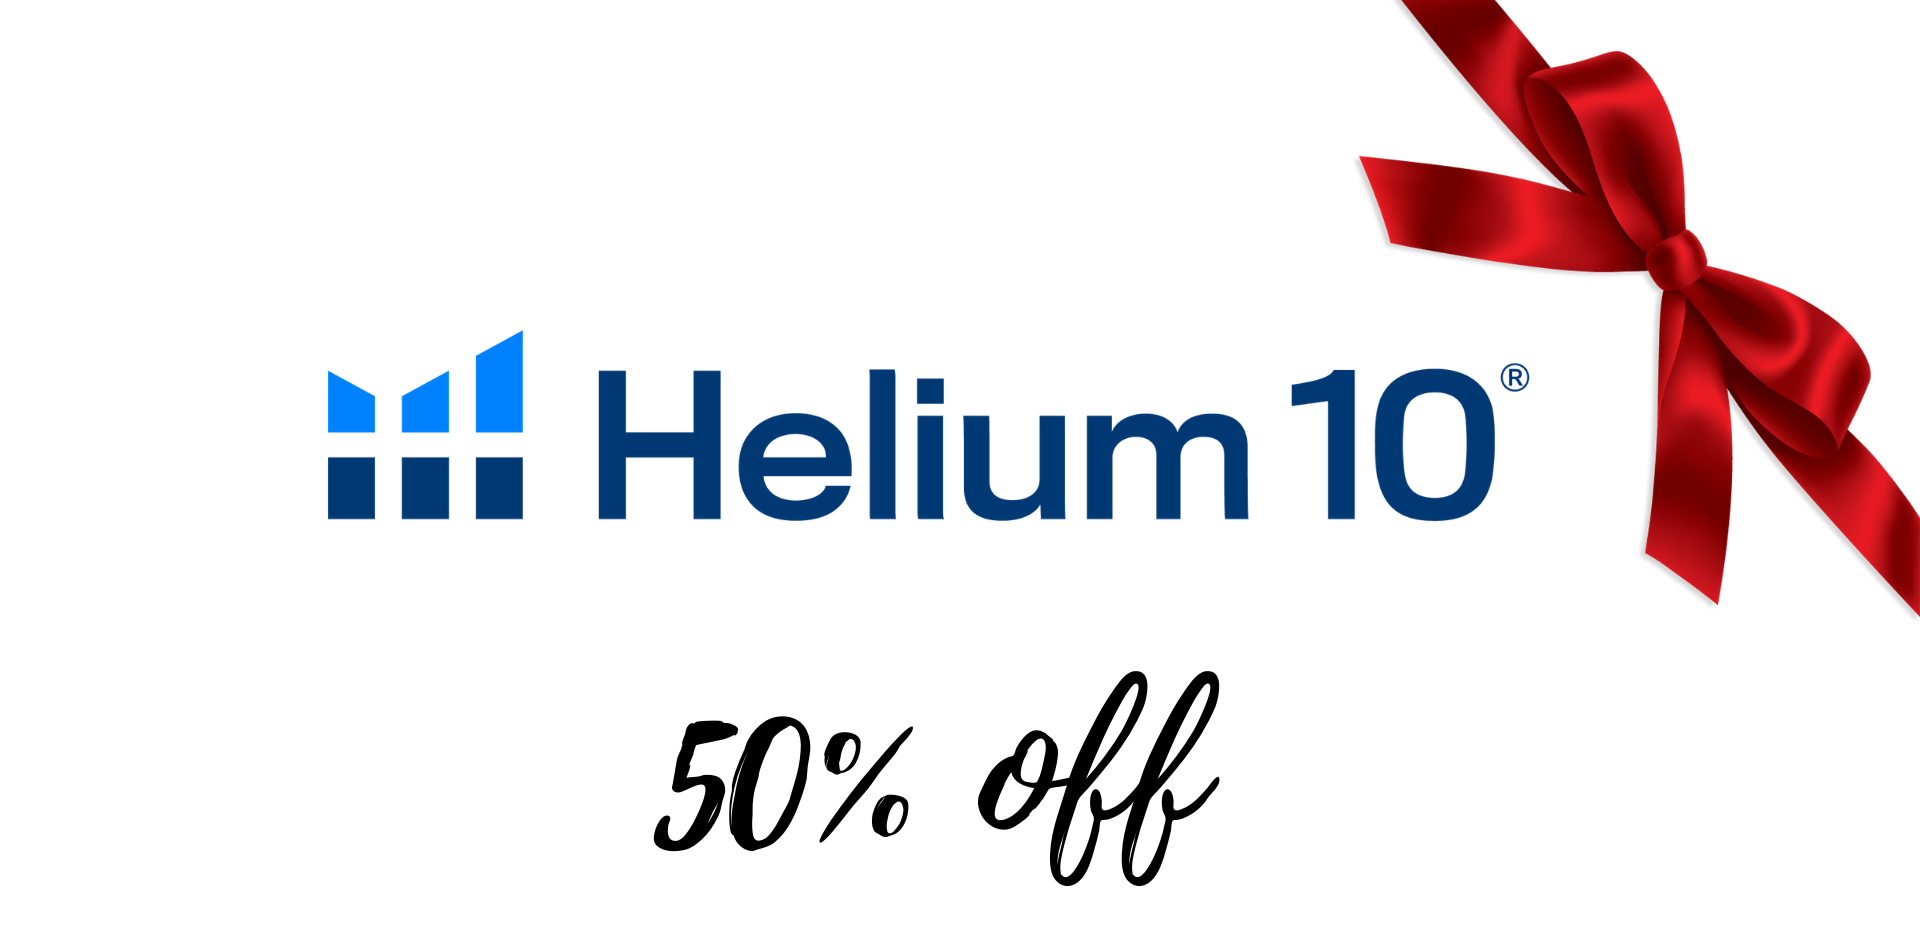 Helium 10 Google Extension